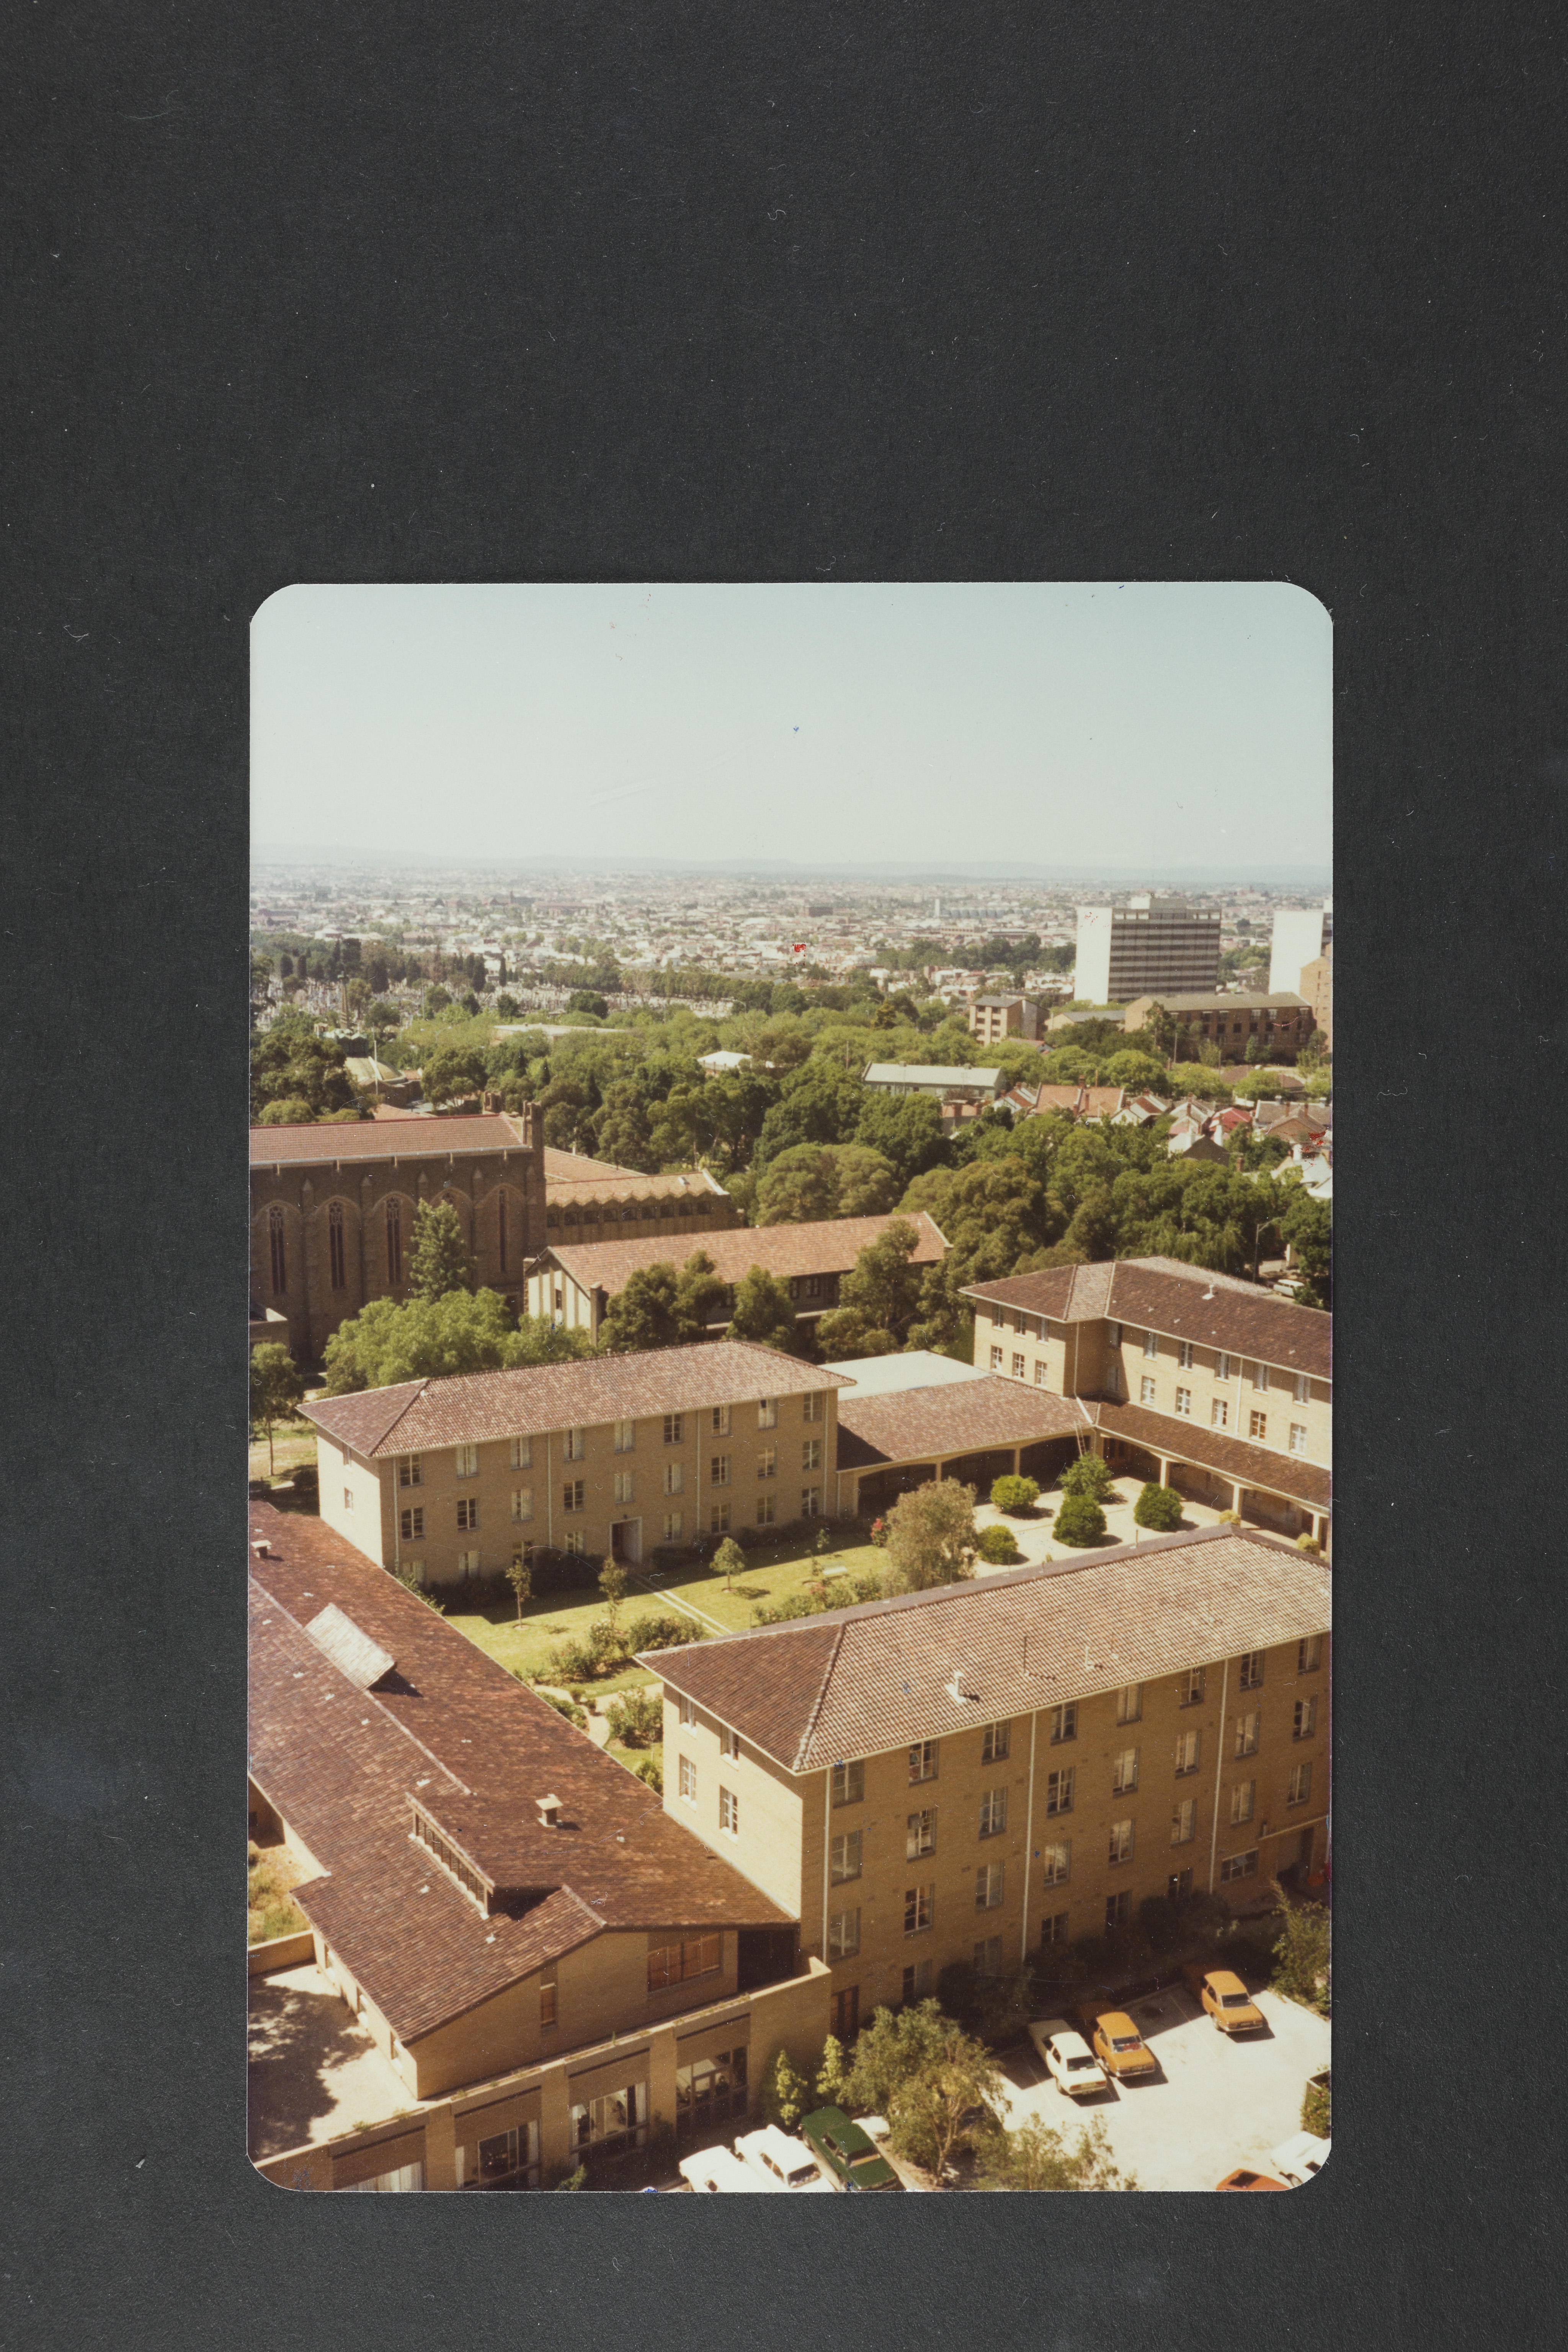 St Mary's College, with Newman College in background, 1978